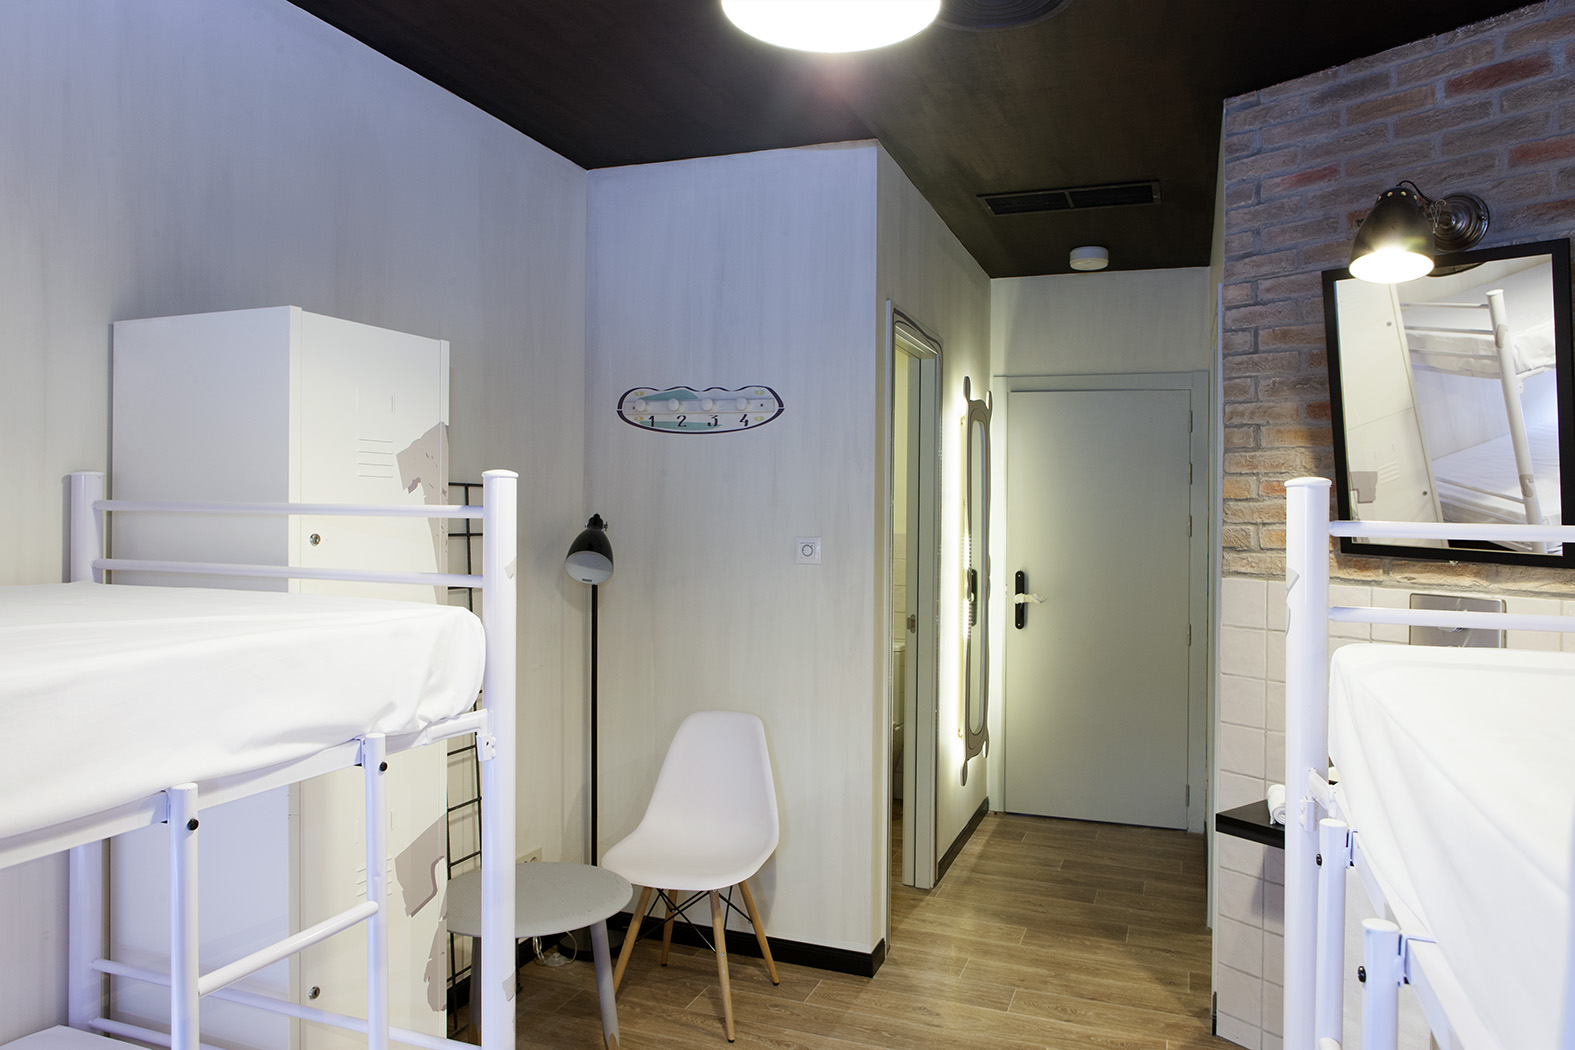 Nace con un establecimiento en madrid la marca room007 for Hostel room interior design ideas